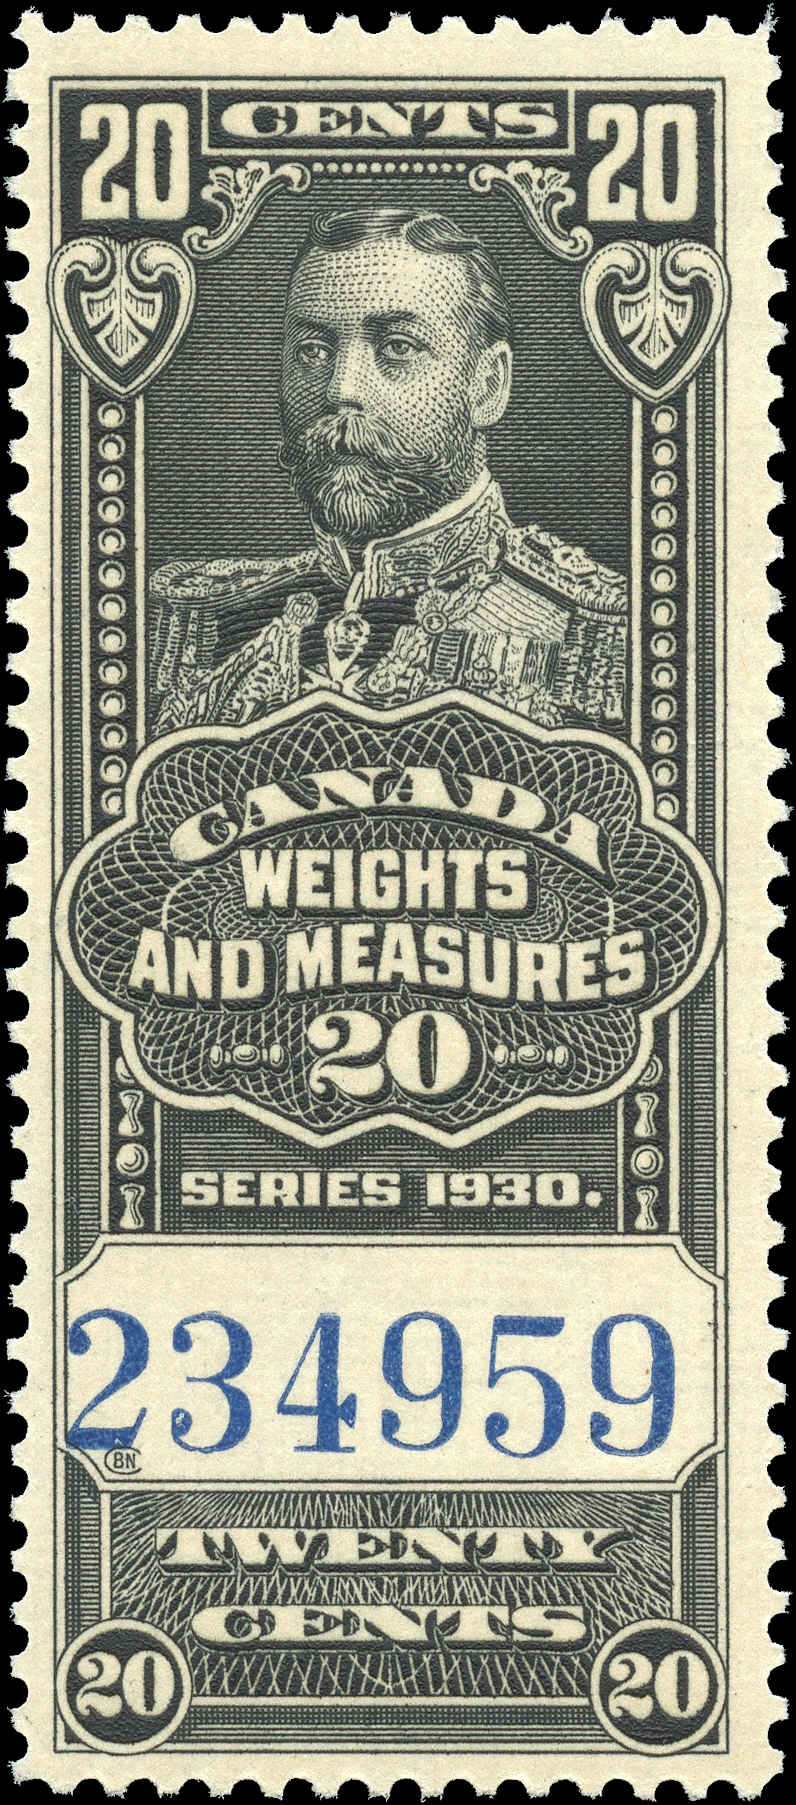 Canada #FWM63, Revenue Stamp, F-VF, MNH